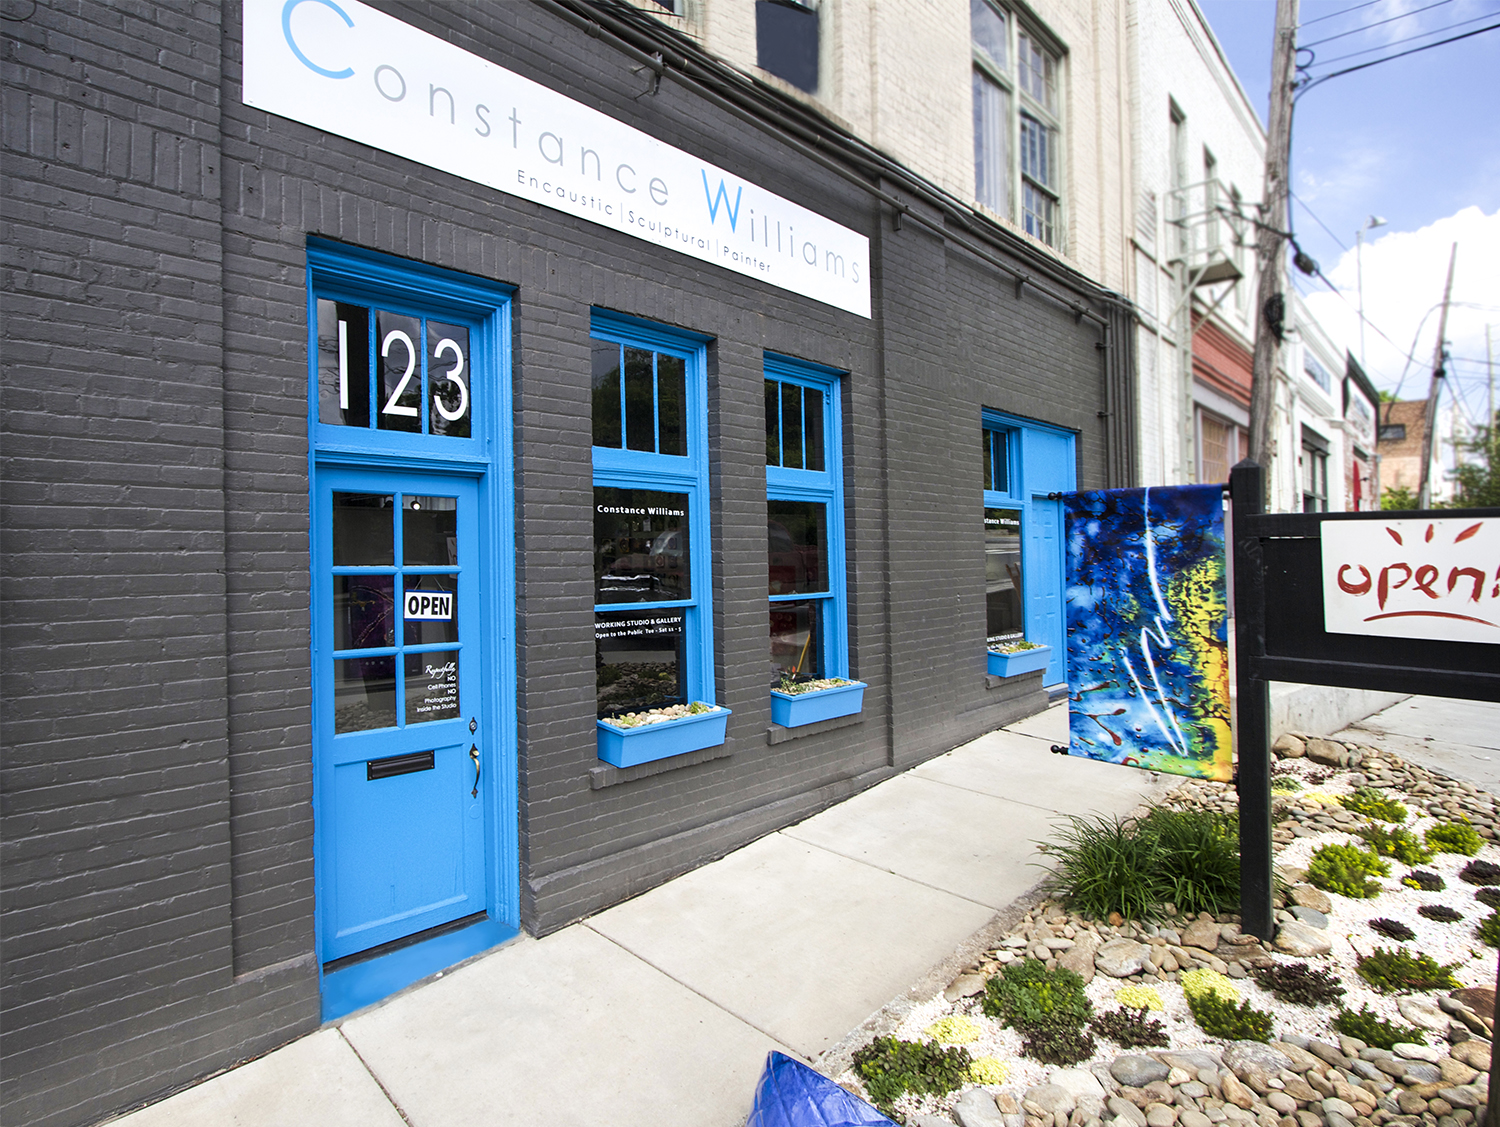 123 Roberts St • Asheville NC 28801 • Wedge Building